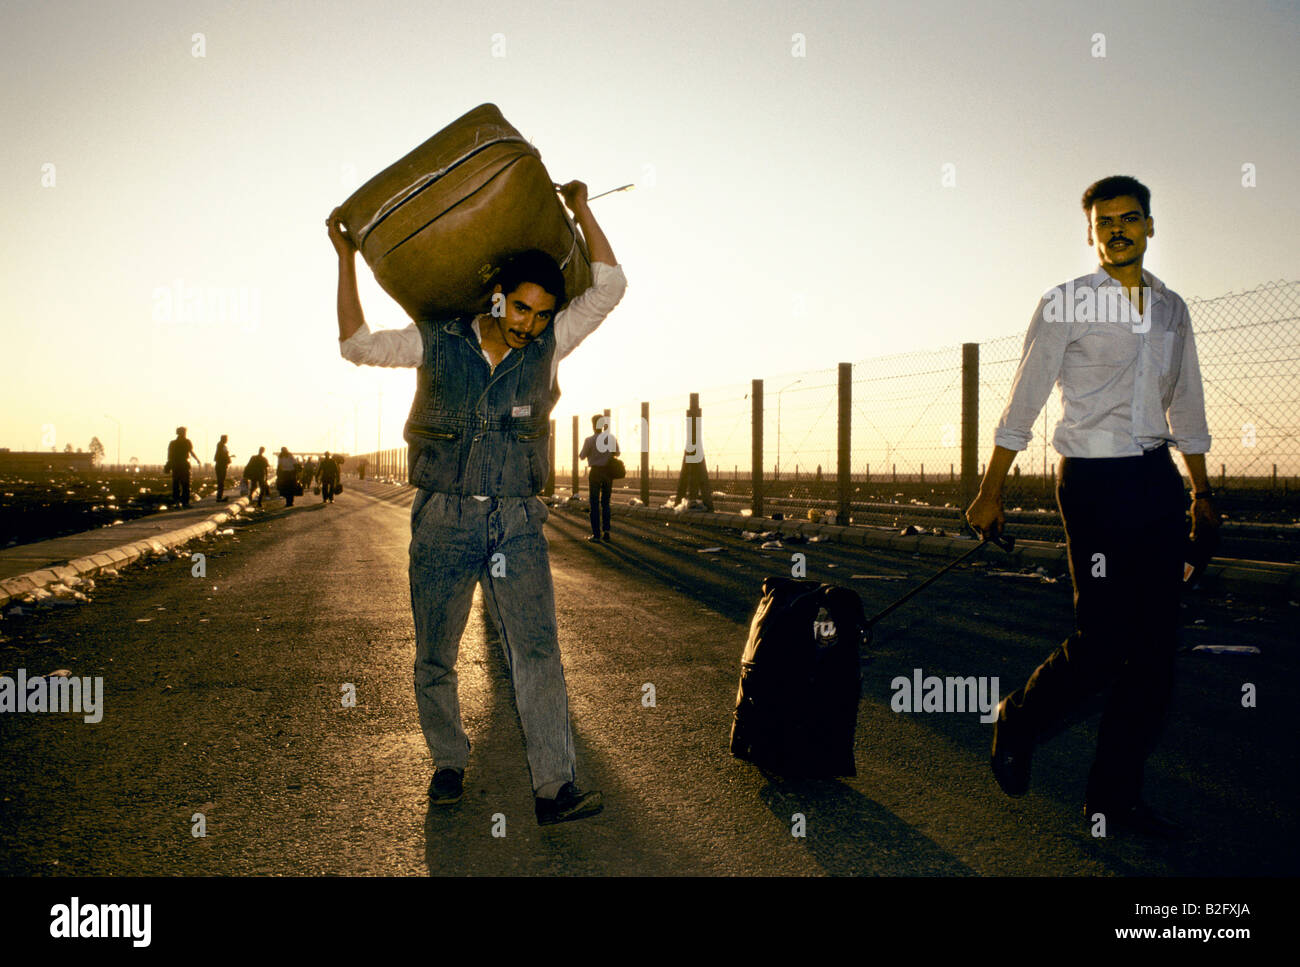 two refugee men carry possessions down a road, during gulf crisis - Stock Image